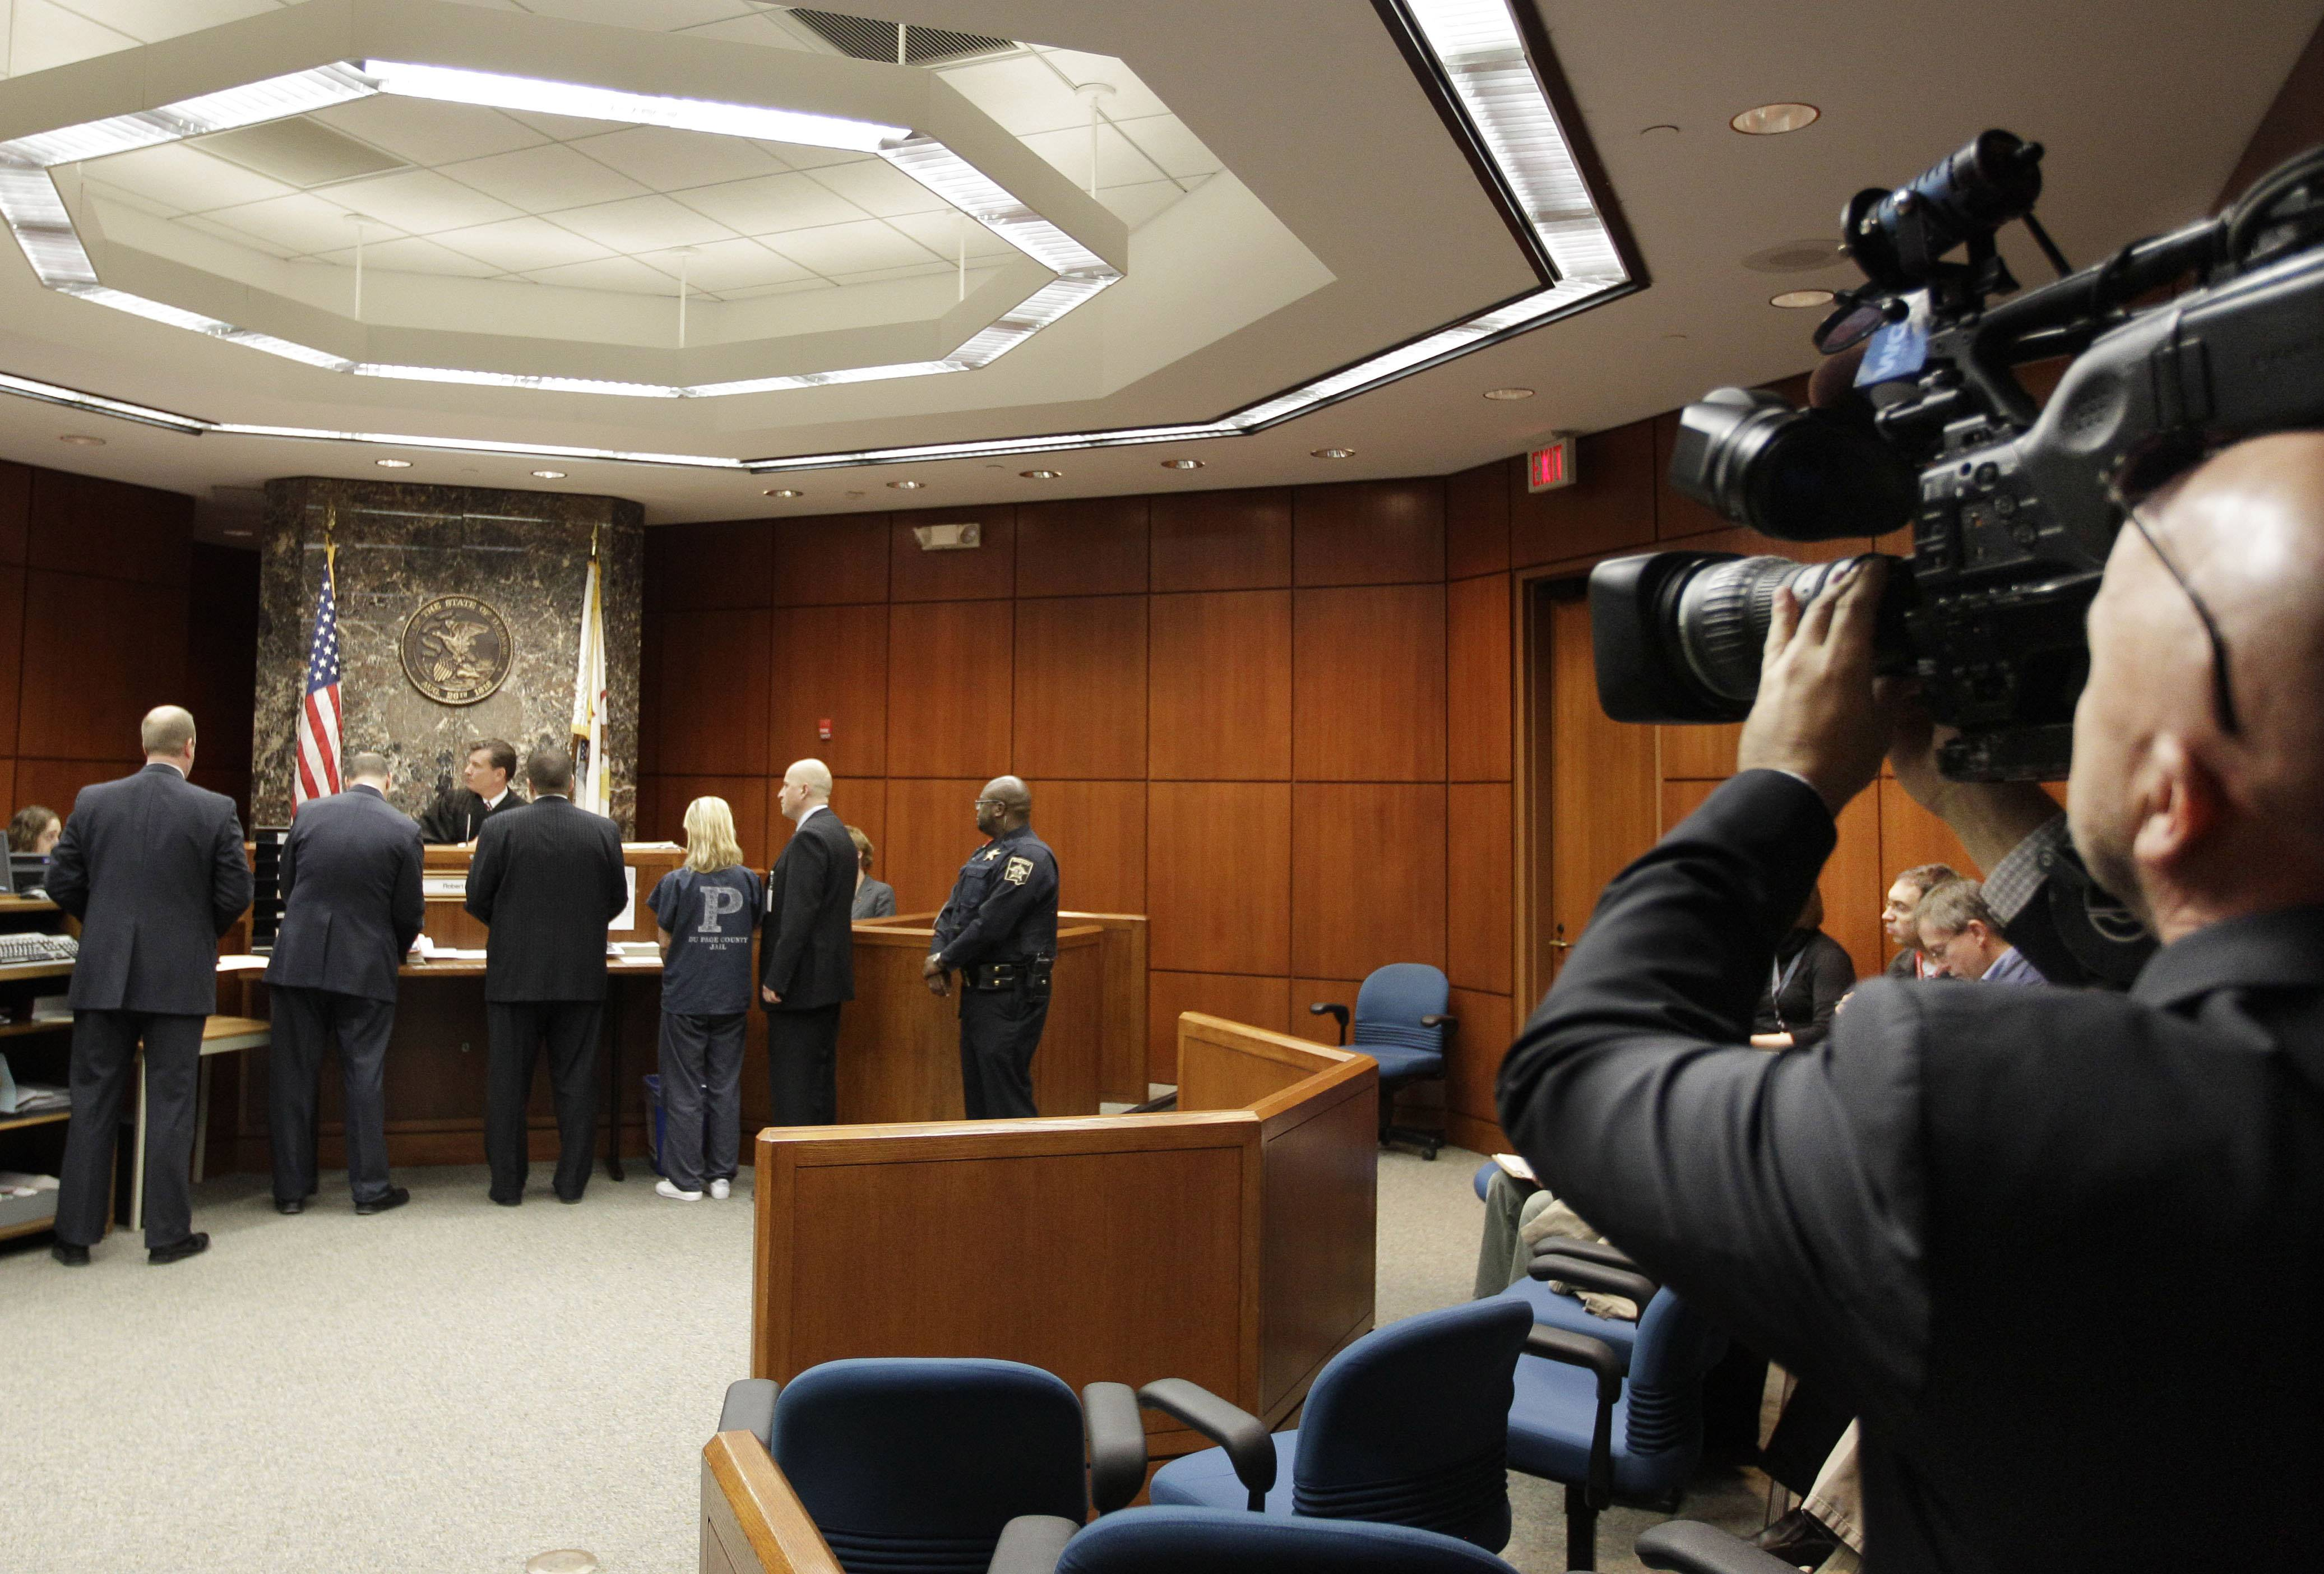 Cook County to begin test of cameras in courtrooms